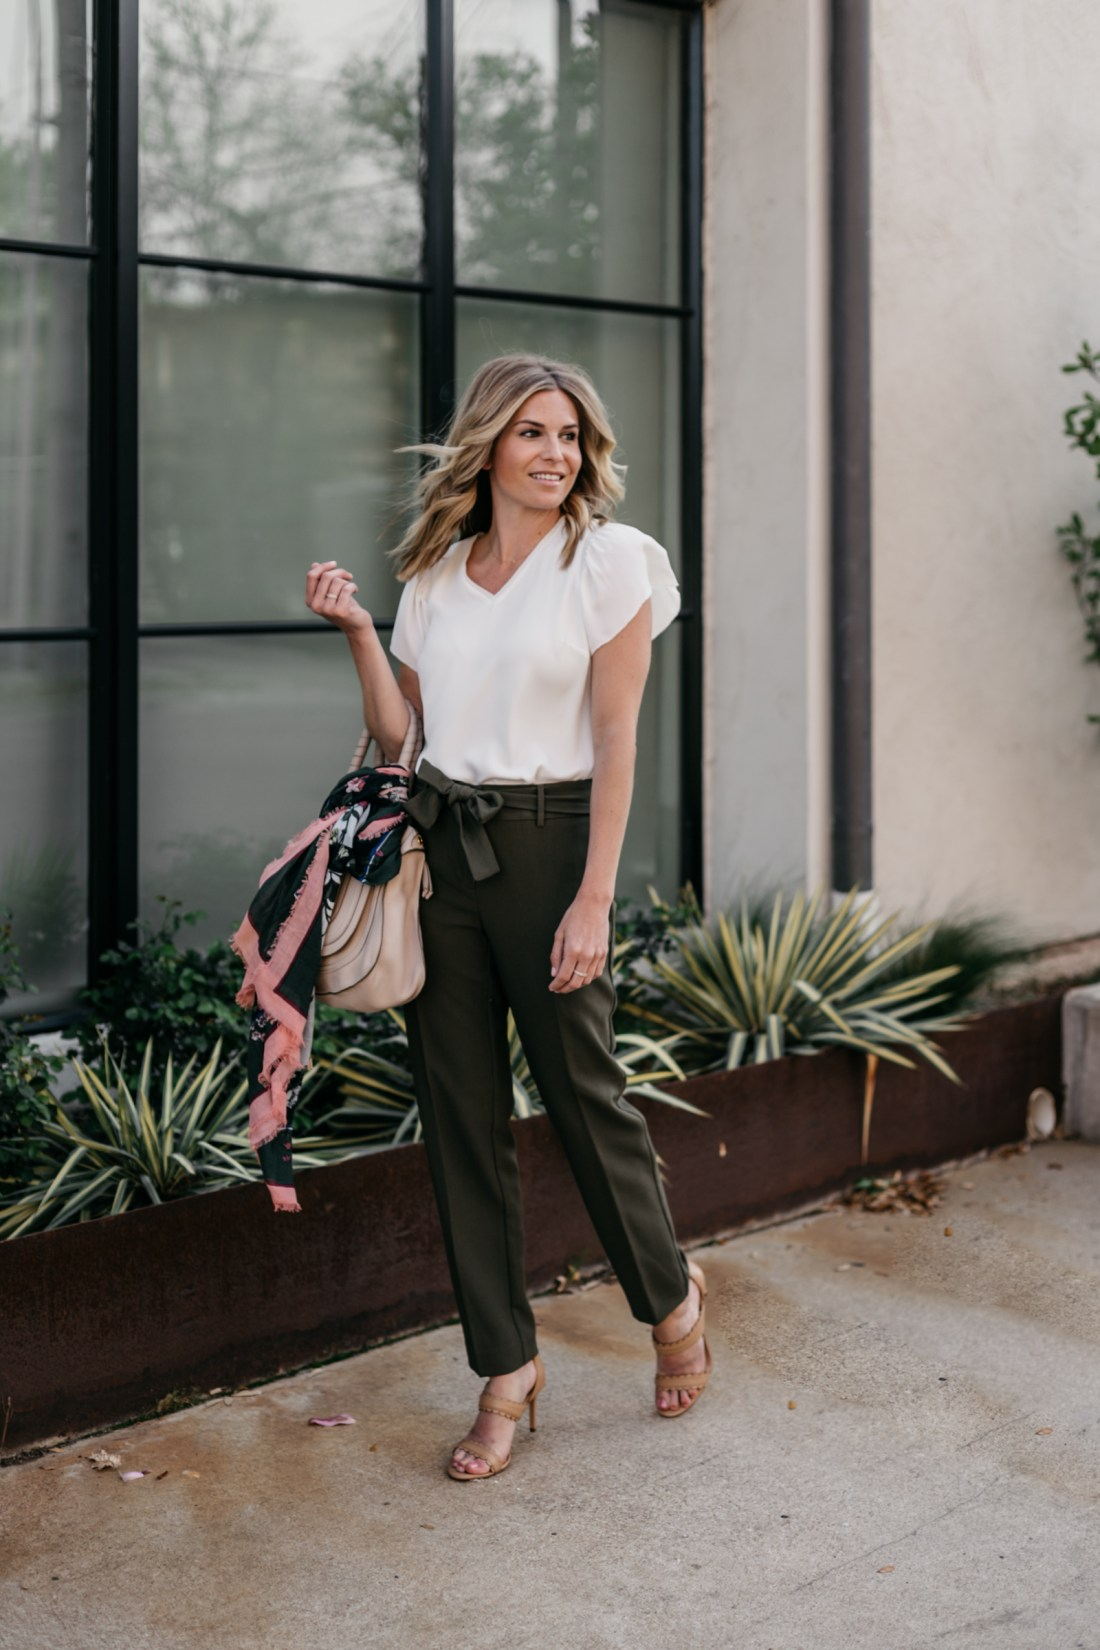 SPRING WORKWEAR - ANN TAYLOR & ONE SMALL BLONDE